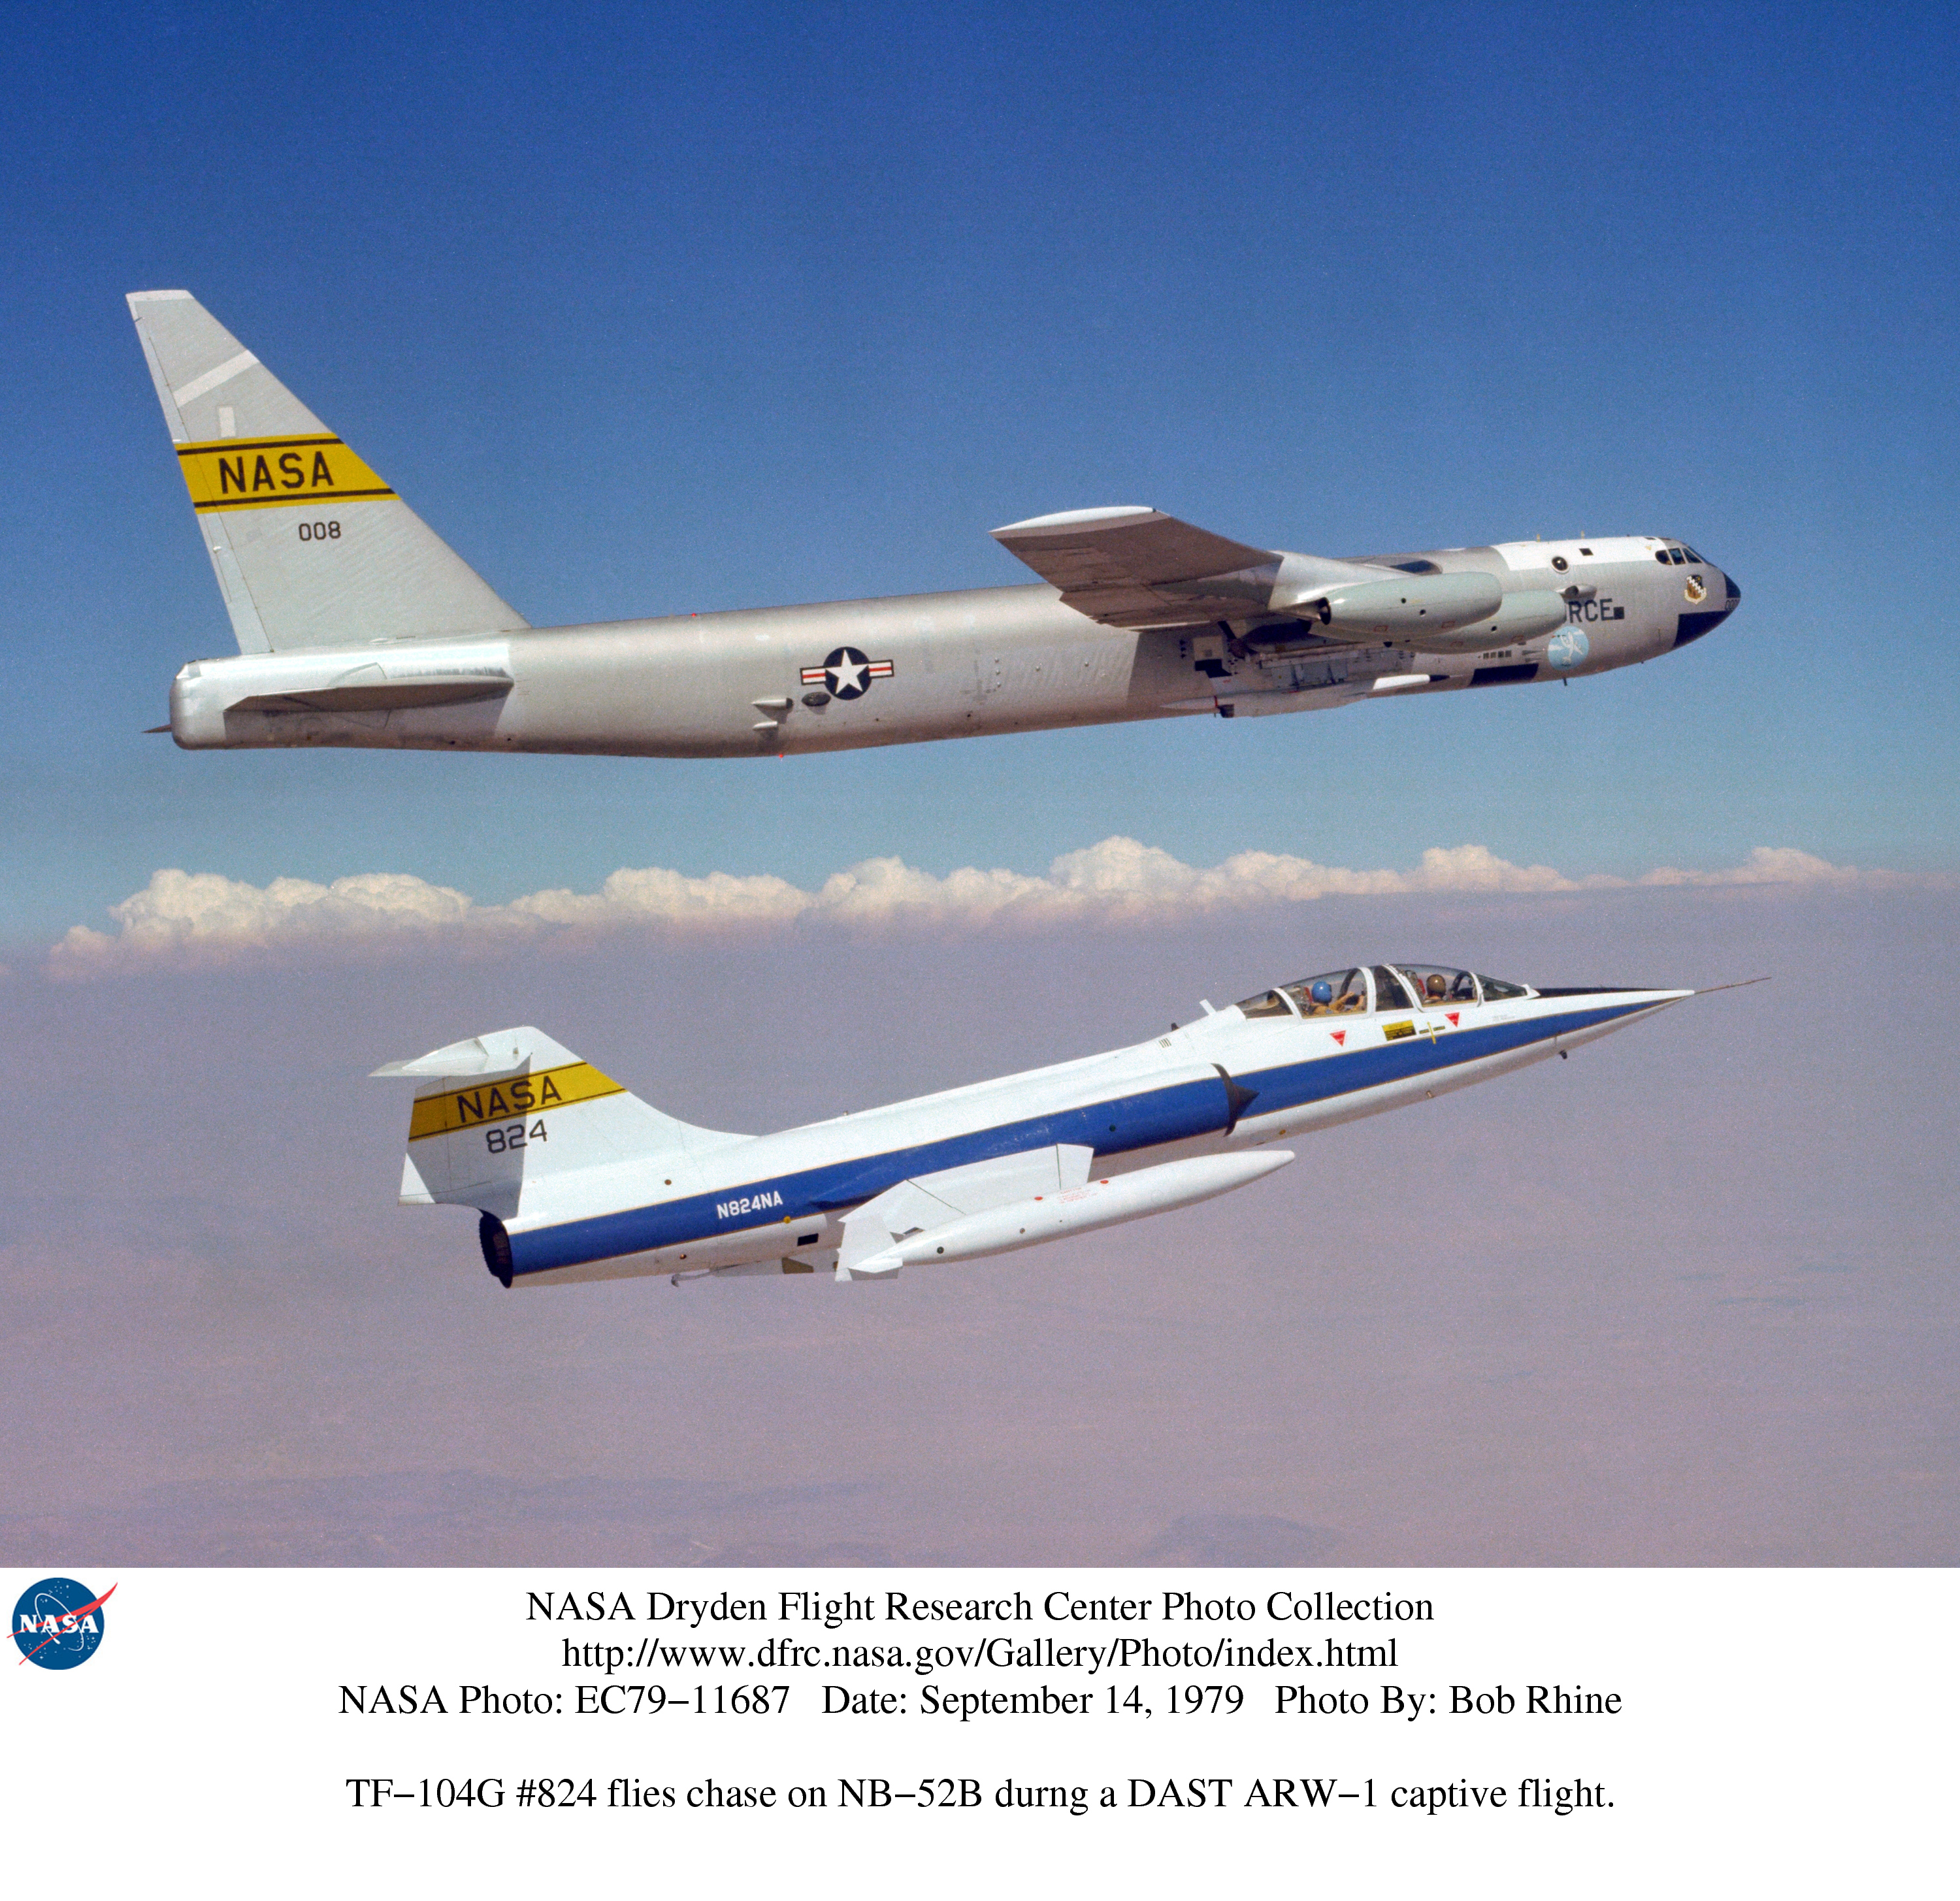 NASA Dryden F-104 Starfighter Photo Collection